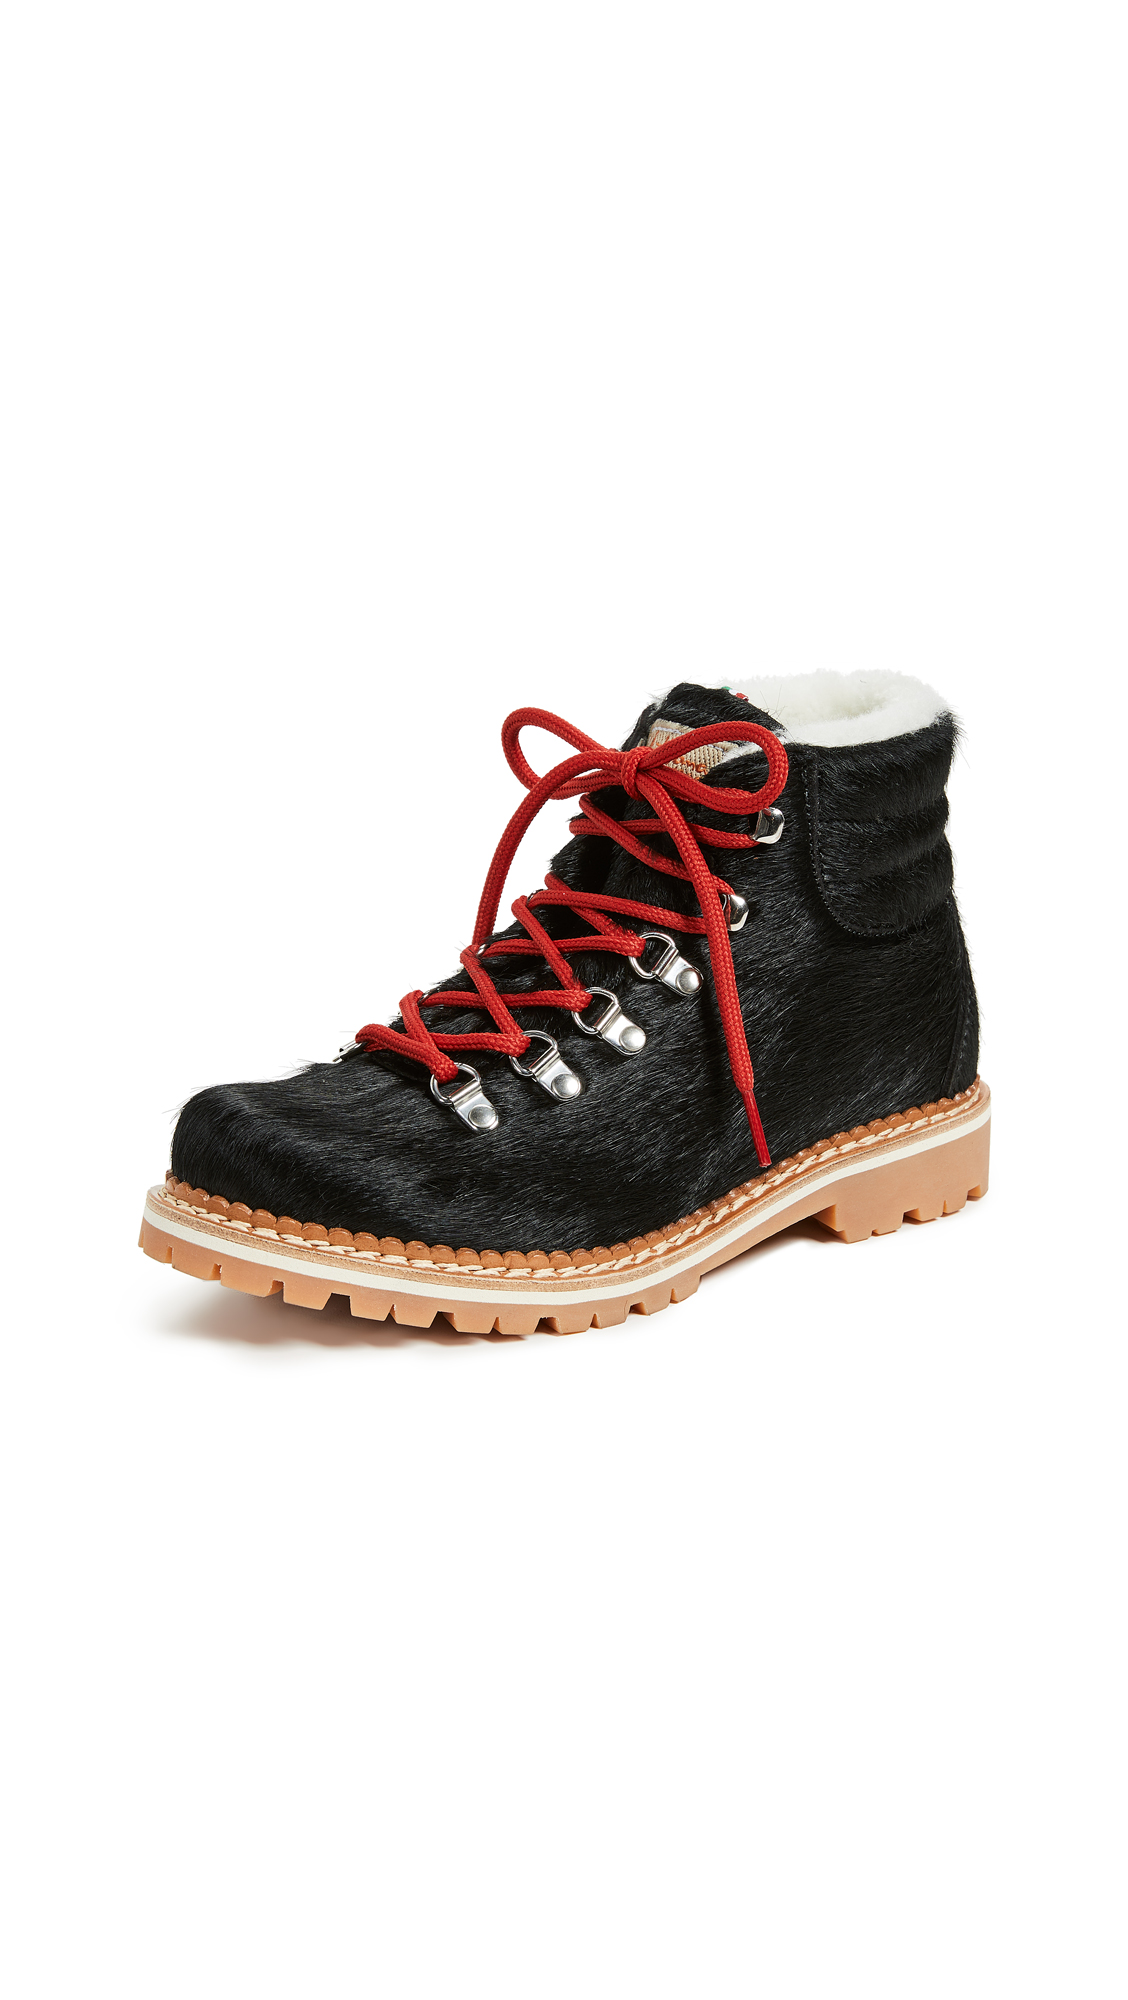 MONTELLIANA Margherita Hiker Boots in Black